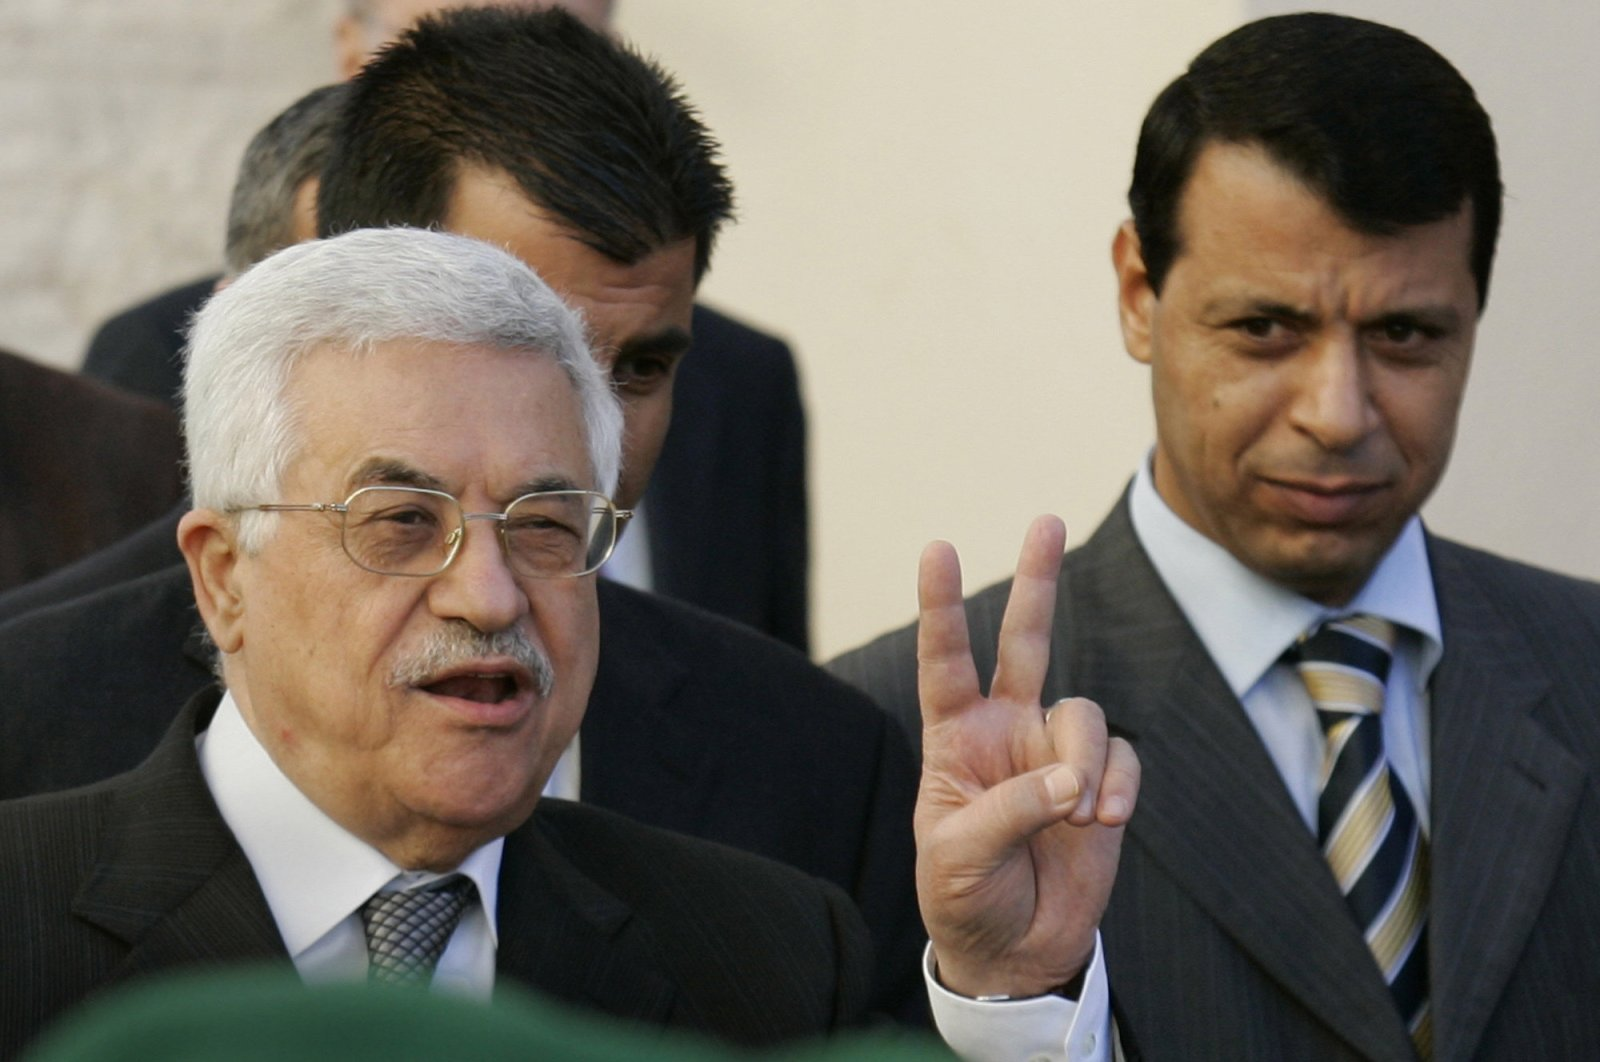 Palestinian Authority President Mahmoud Abbas (L) flashes the peace sign as Mohammed Dahlan looks on in the West Bank town of Ramallah, Dec. 18, 2006. (AP Photo)